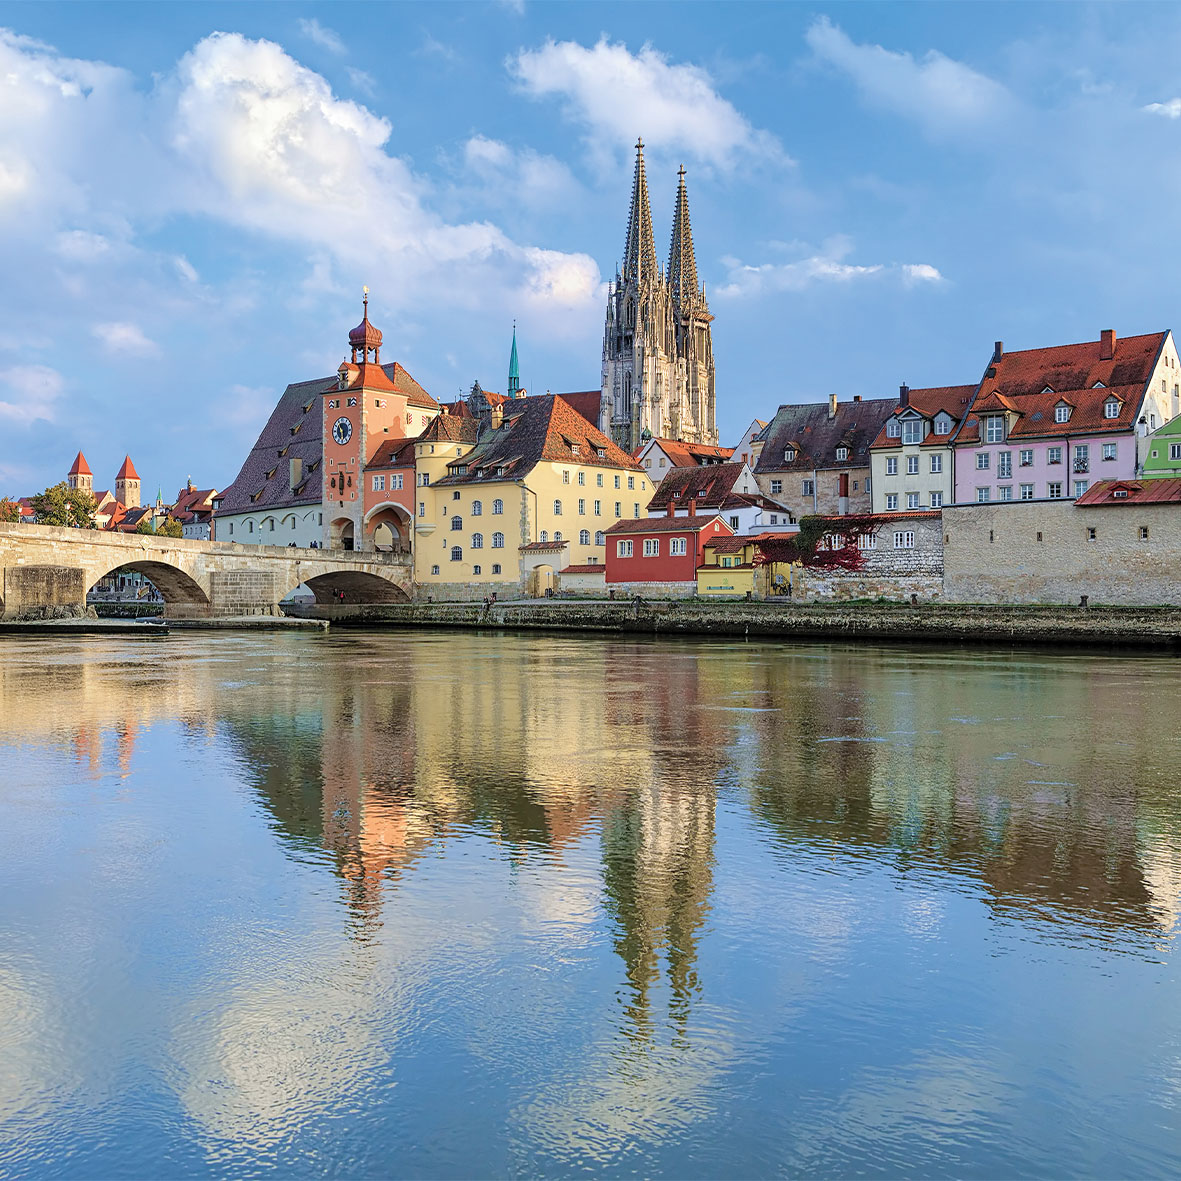 Regensburg Cathedral and Stone Bridge over Danube